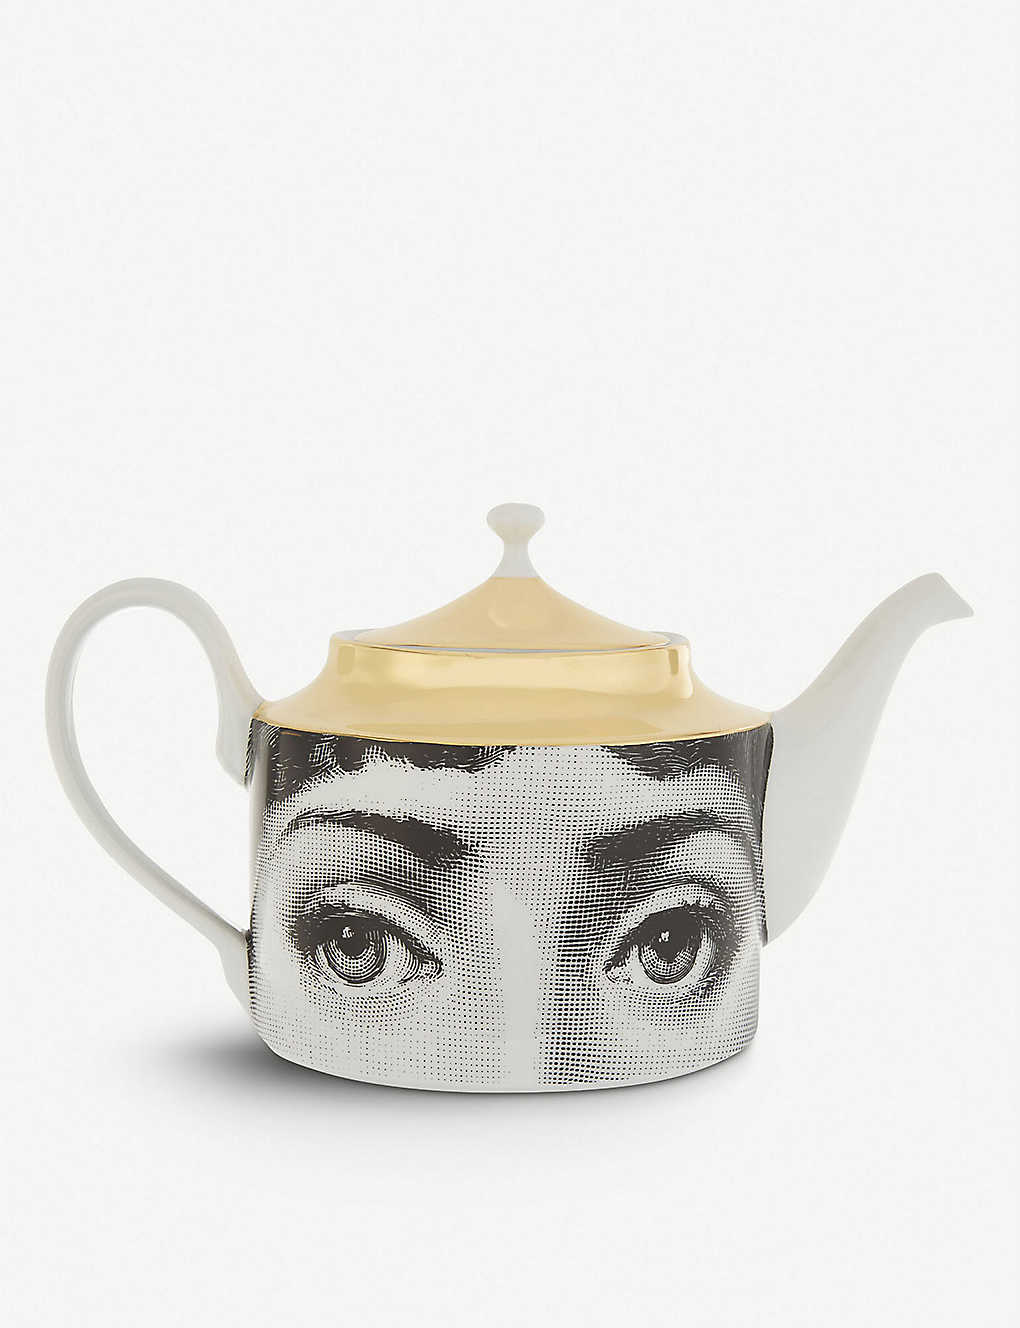 FORNASETTI: Themes and Variations porcelain teapot